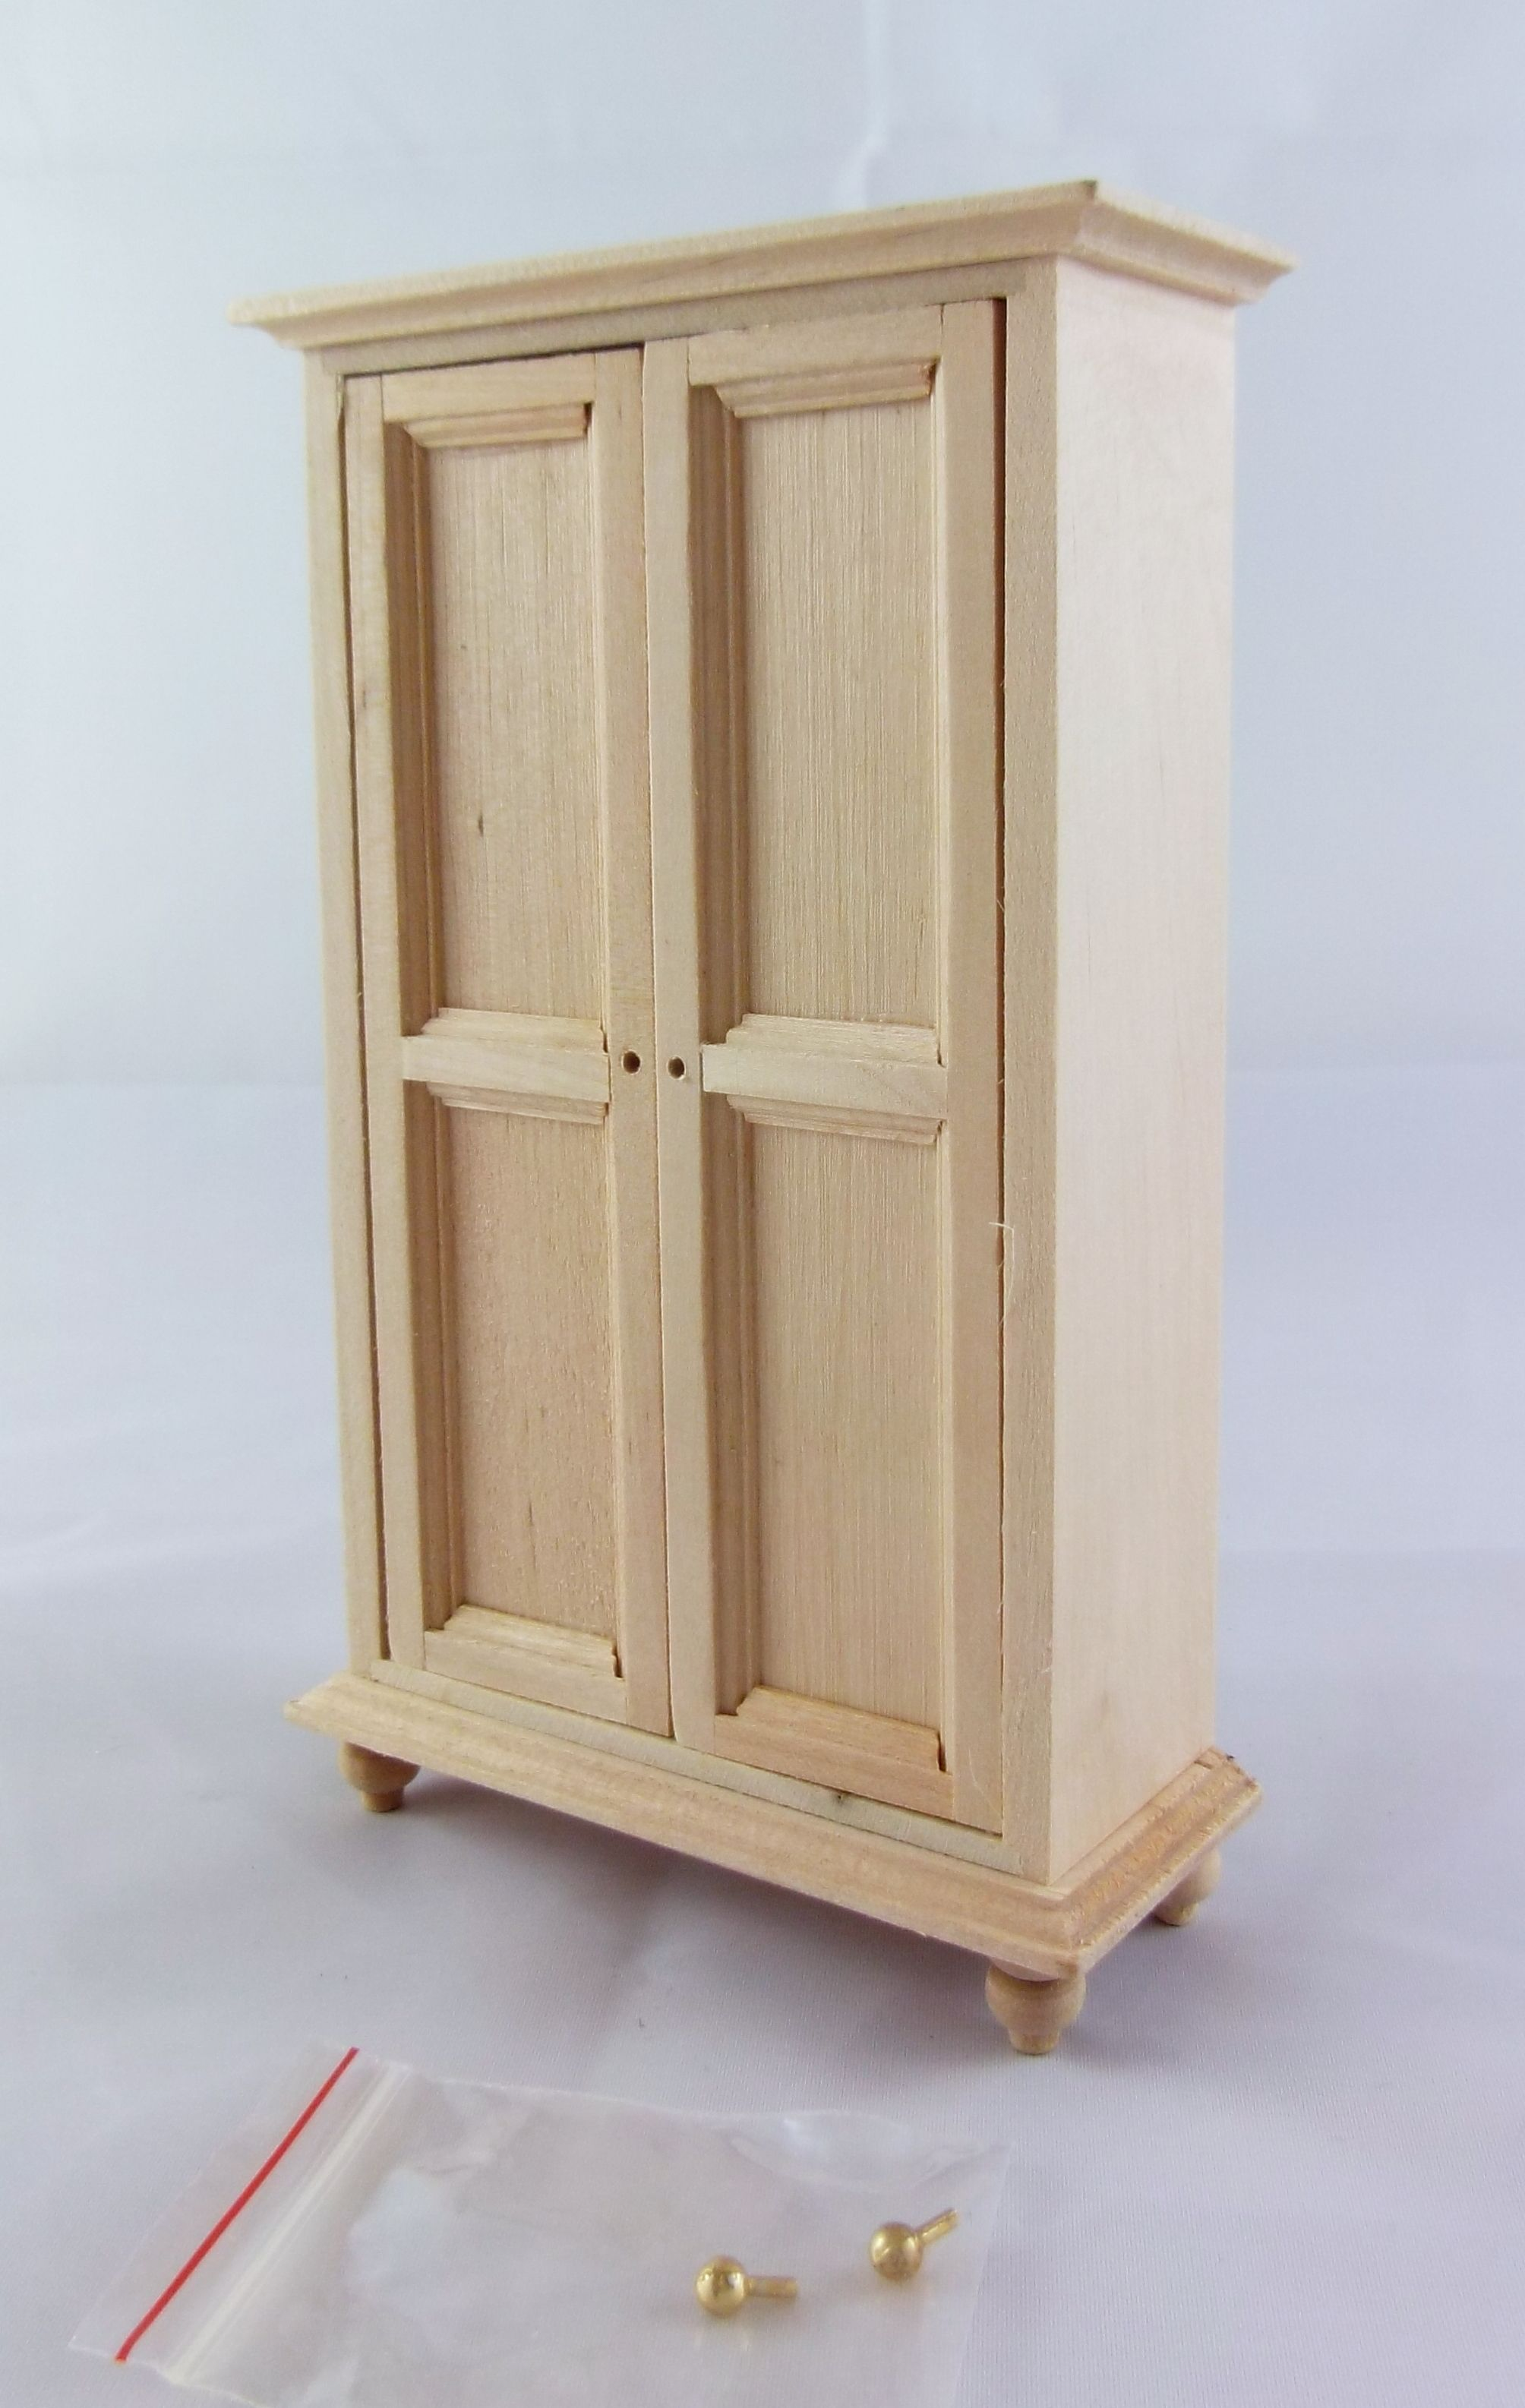 unfinished dollhouse furniture. Dolls House Miniature 1:12 Unfinished Bedroom Furniture Natural Wood Wardrobe Dollhouse N